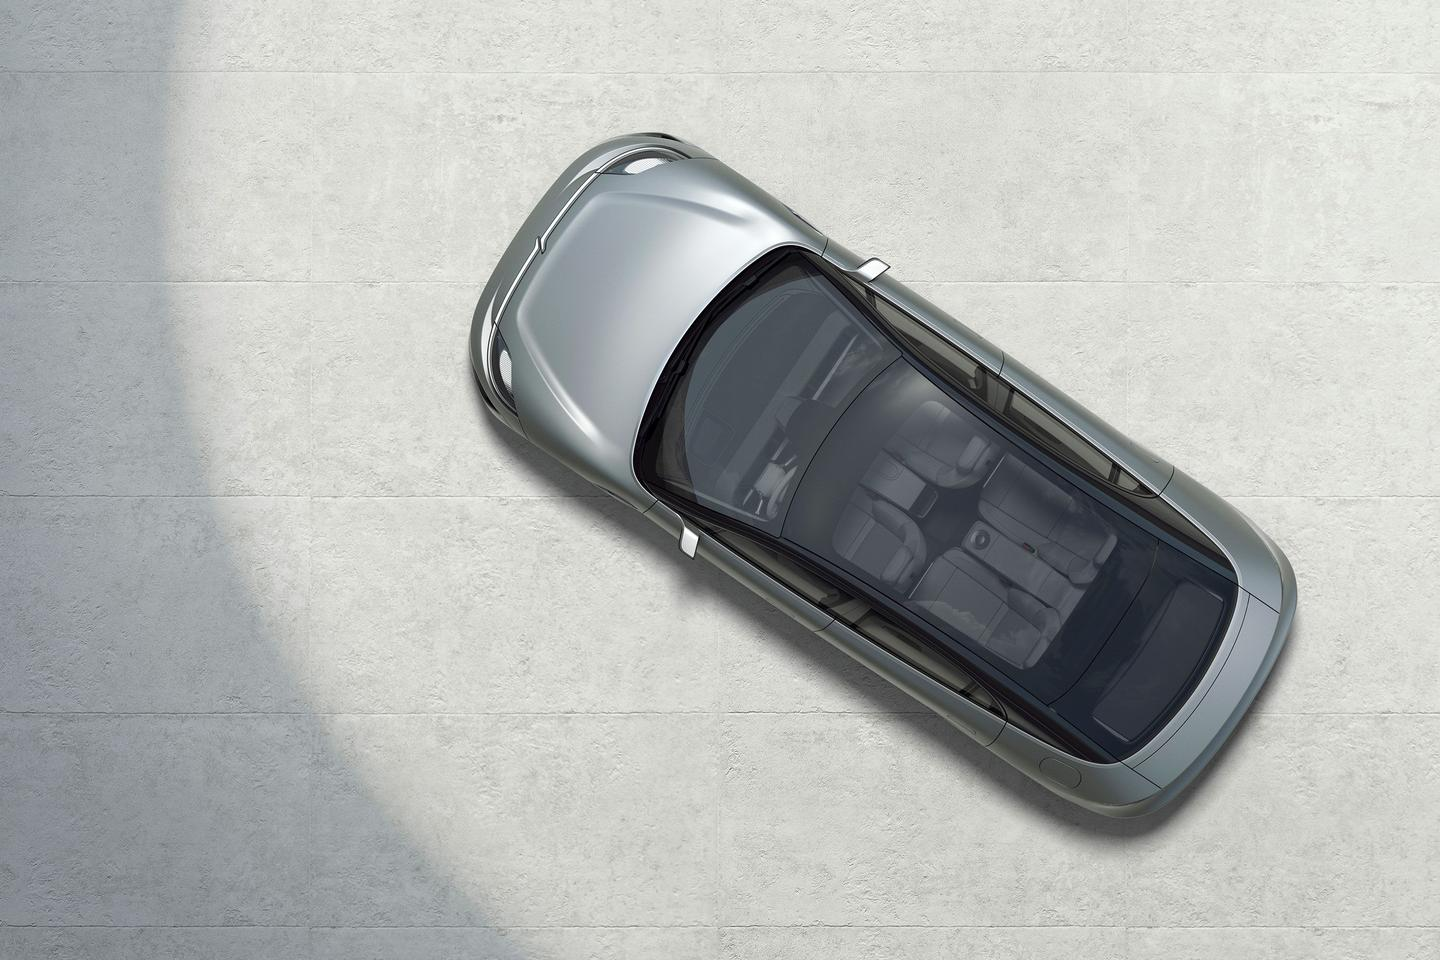 Sony's Vision S concept car from the top down